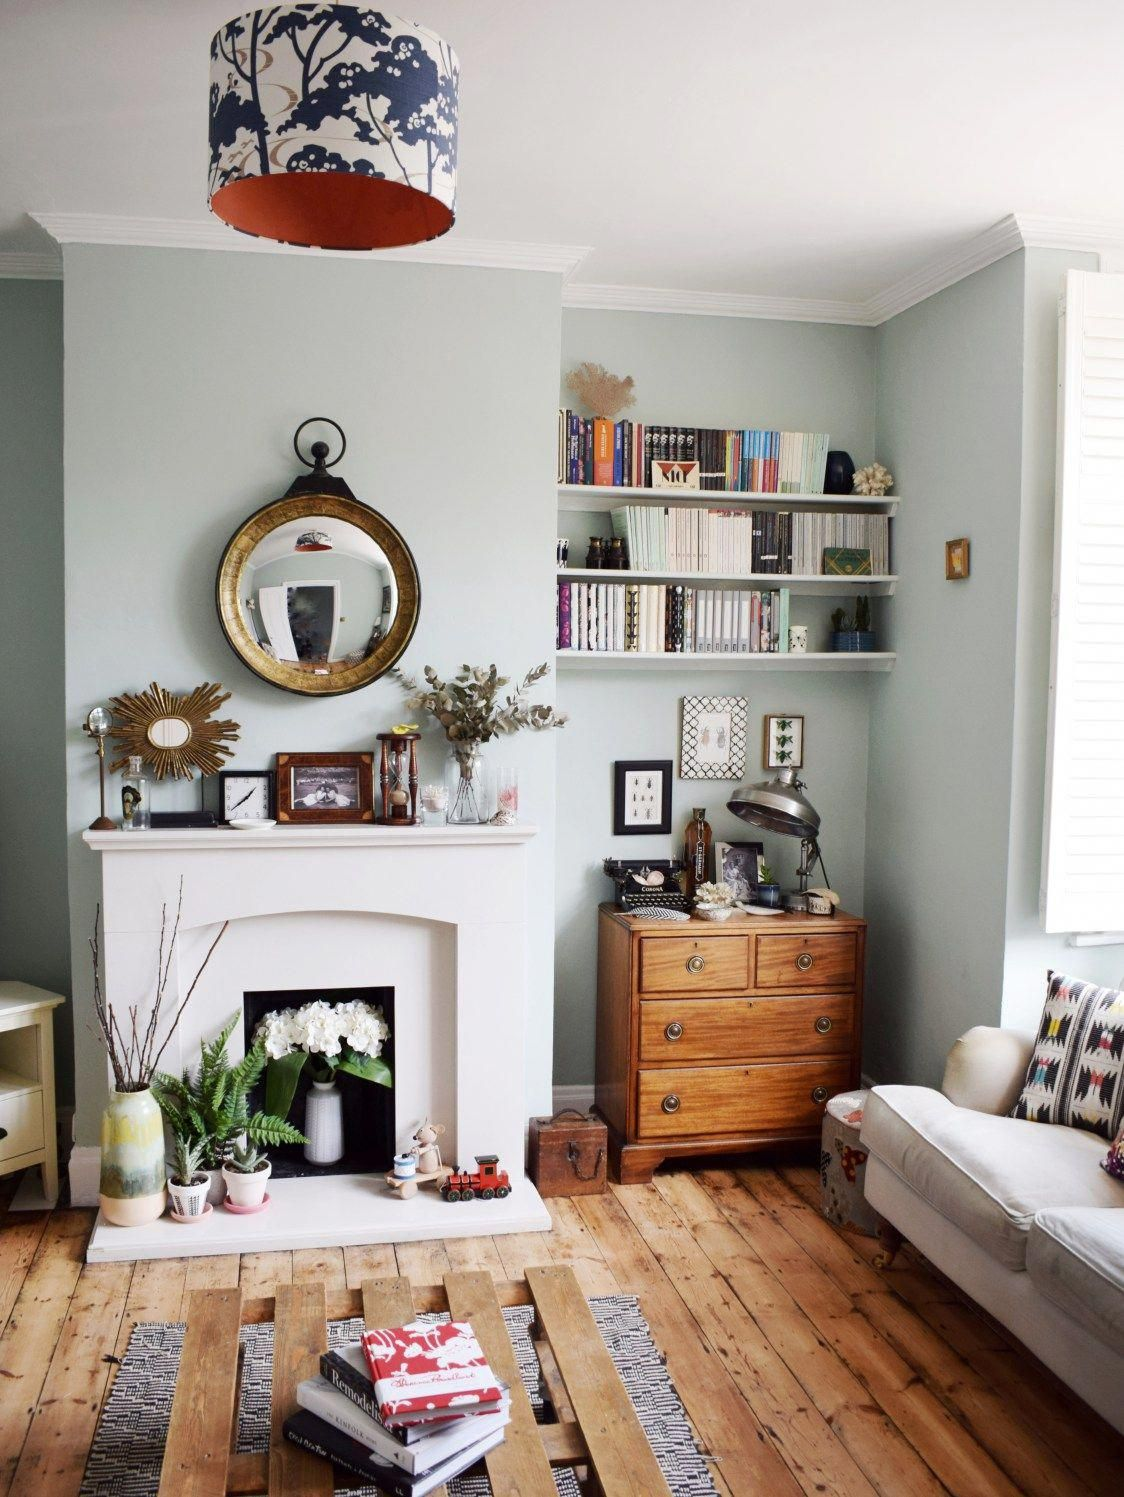 Help Decorate My Living Room: Interior Decorating Help #cooltipsforyourdecor (With